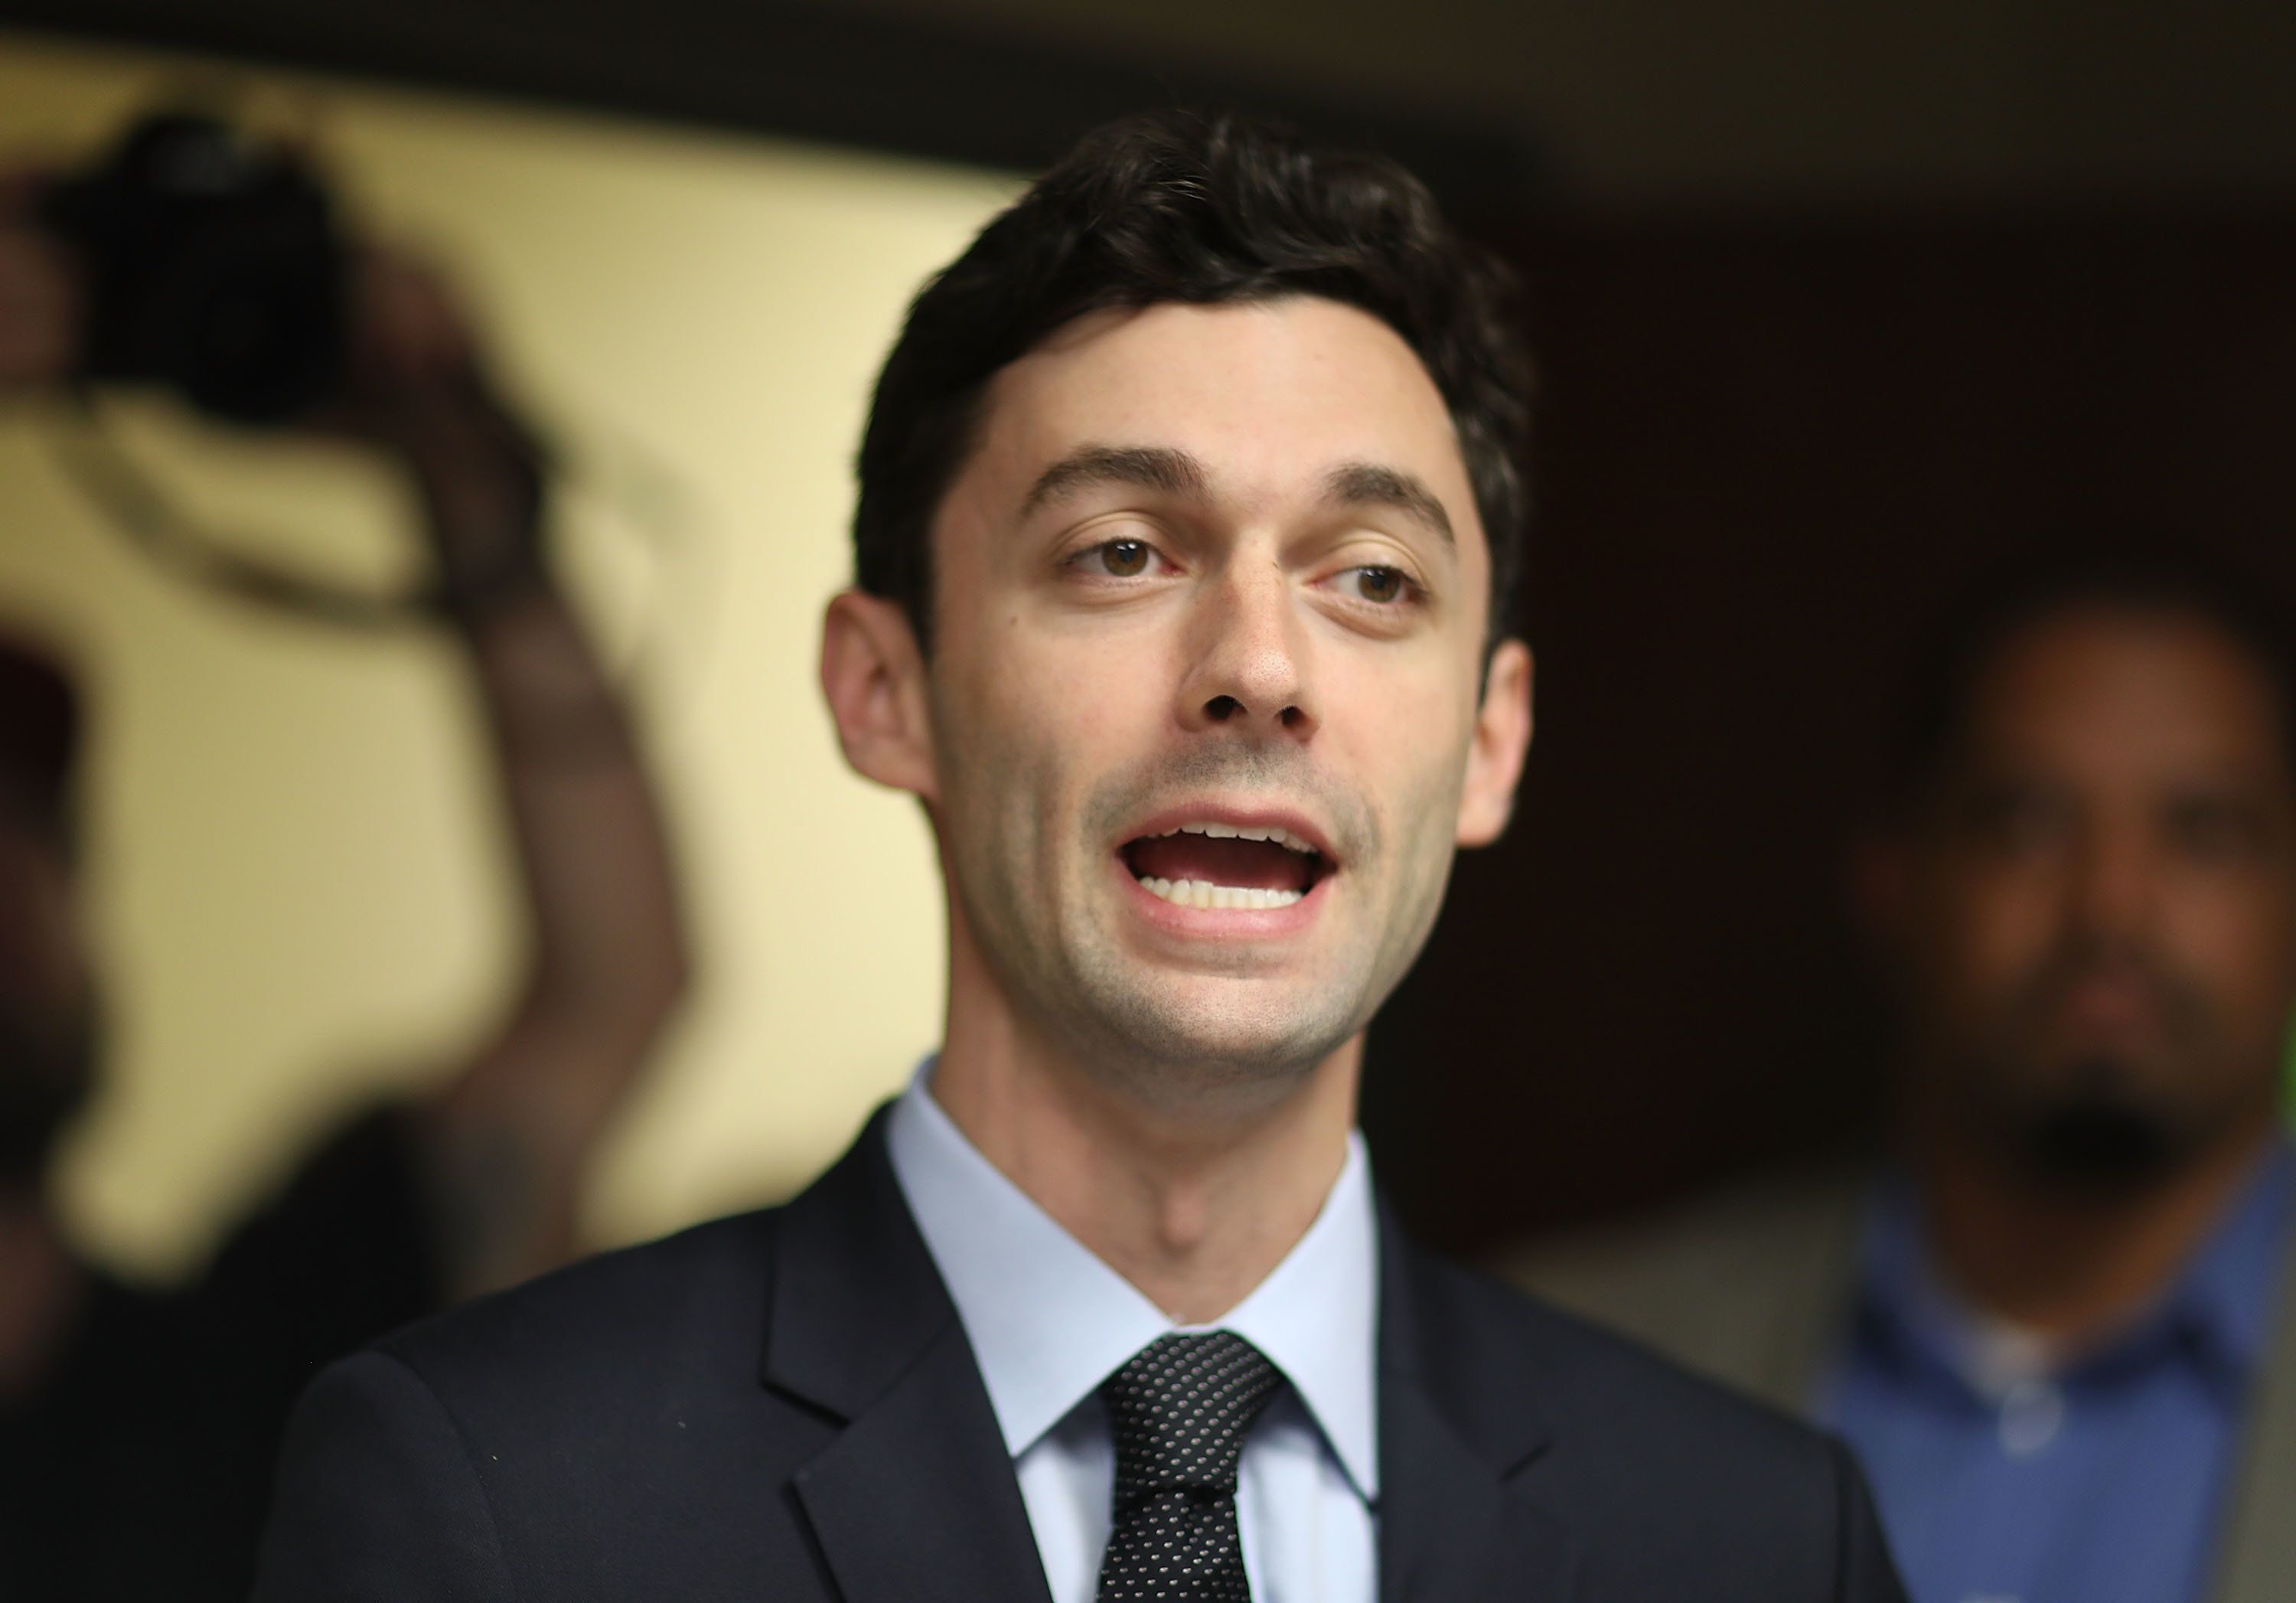 Democratic candidate Jon Ossoff speaks to supporters at a campaign office on April 15, 2017. Ossoff is running for Georg